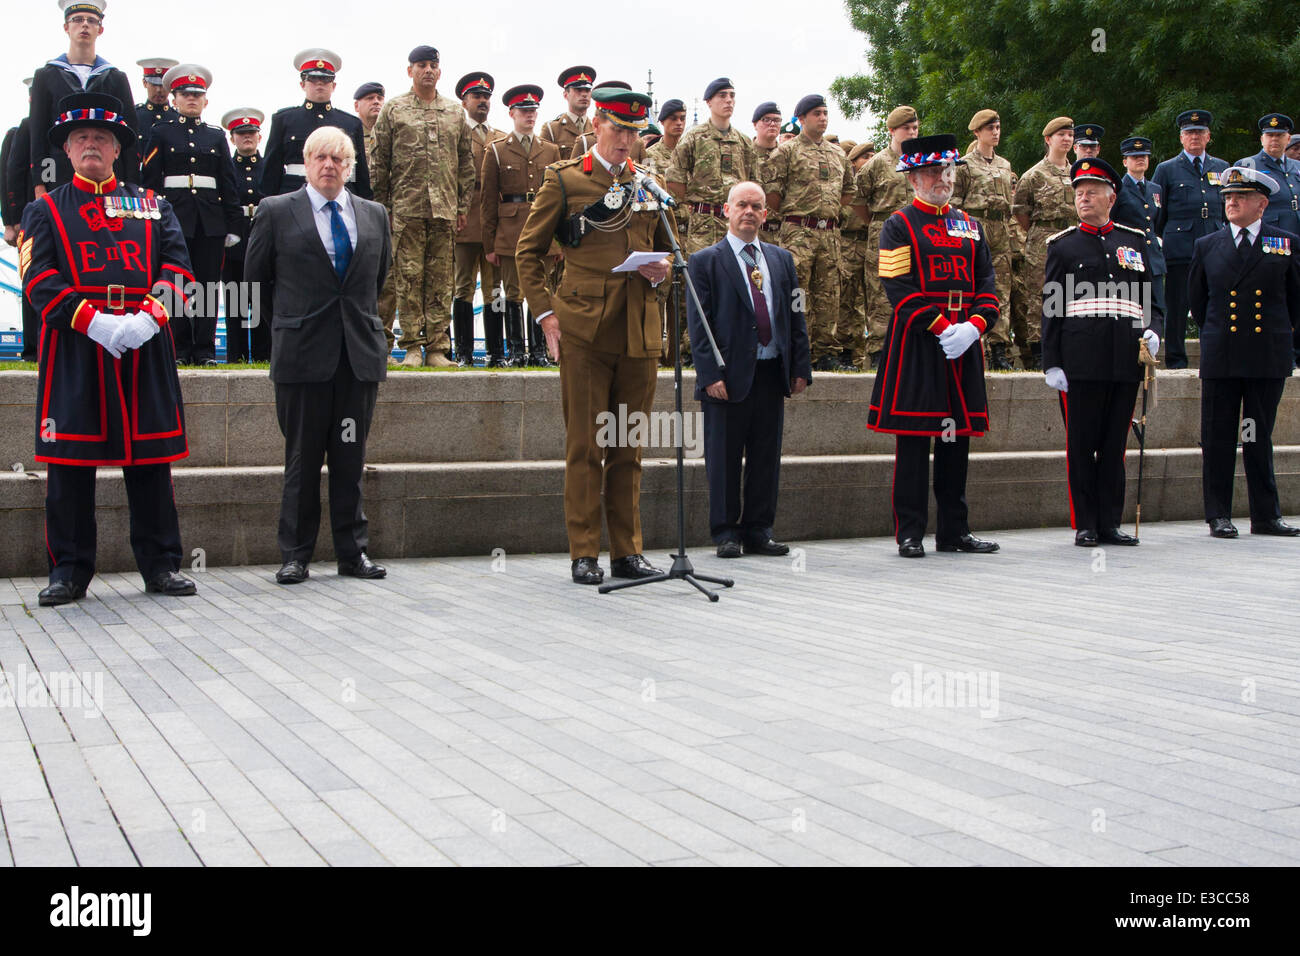 London, UK. 23rd June, 2014. London mayor Boris Johnson, second left, joins members and veterans of the armed forces - Stock Image